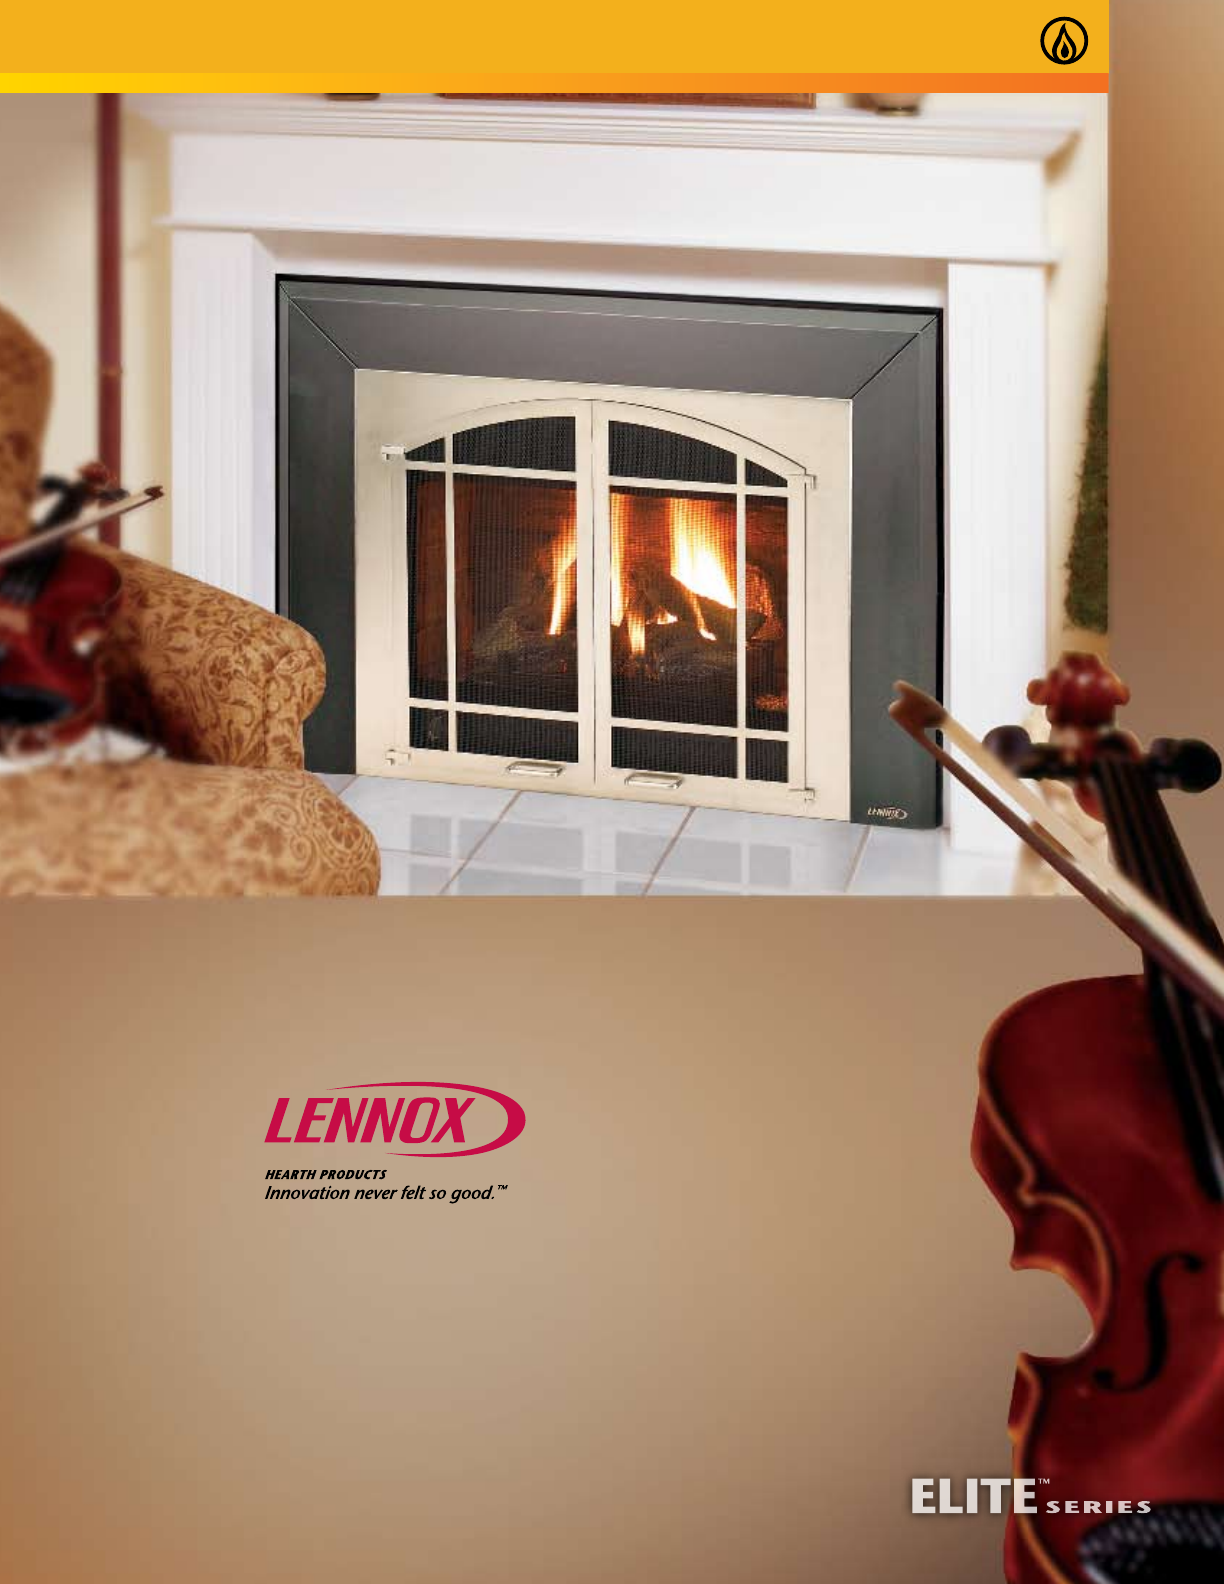 Lennox Hearth Indoor Fireplace Elite Series User Guide